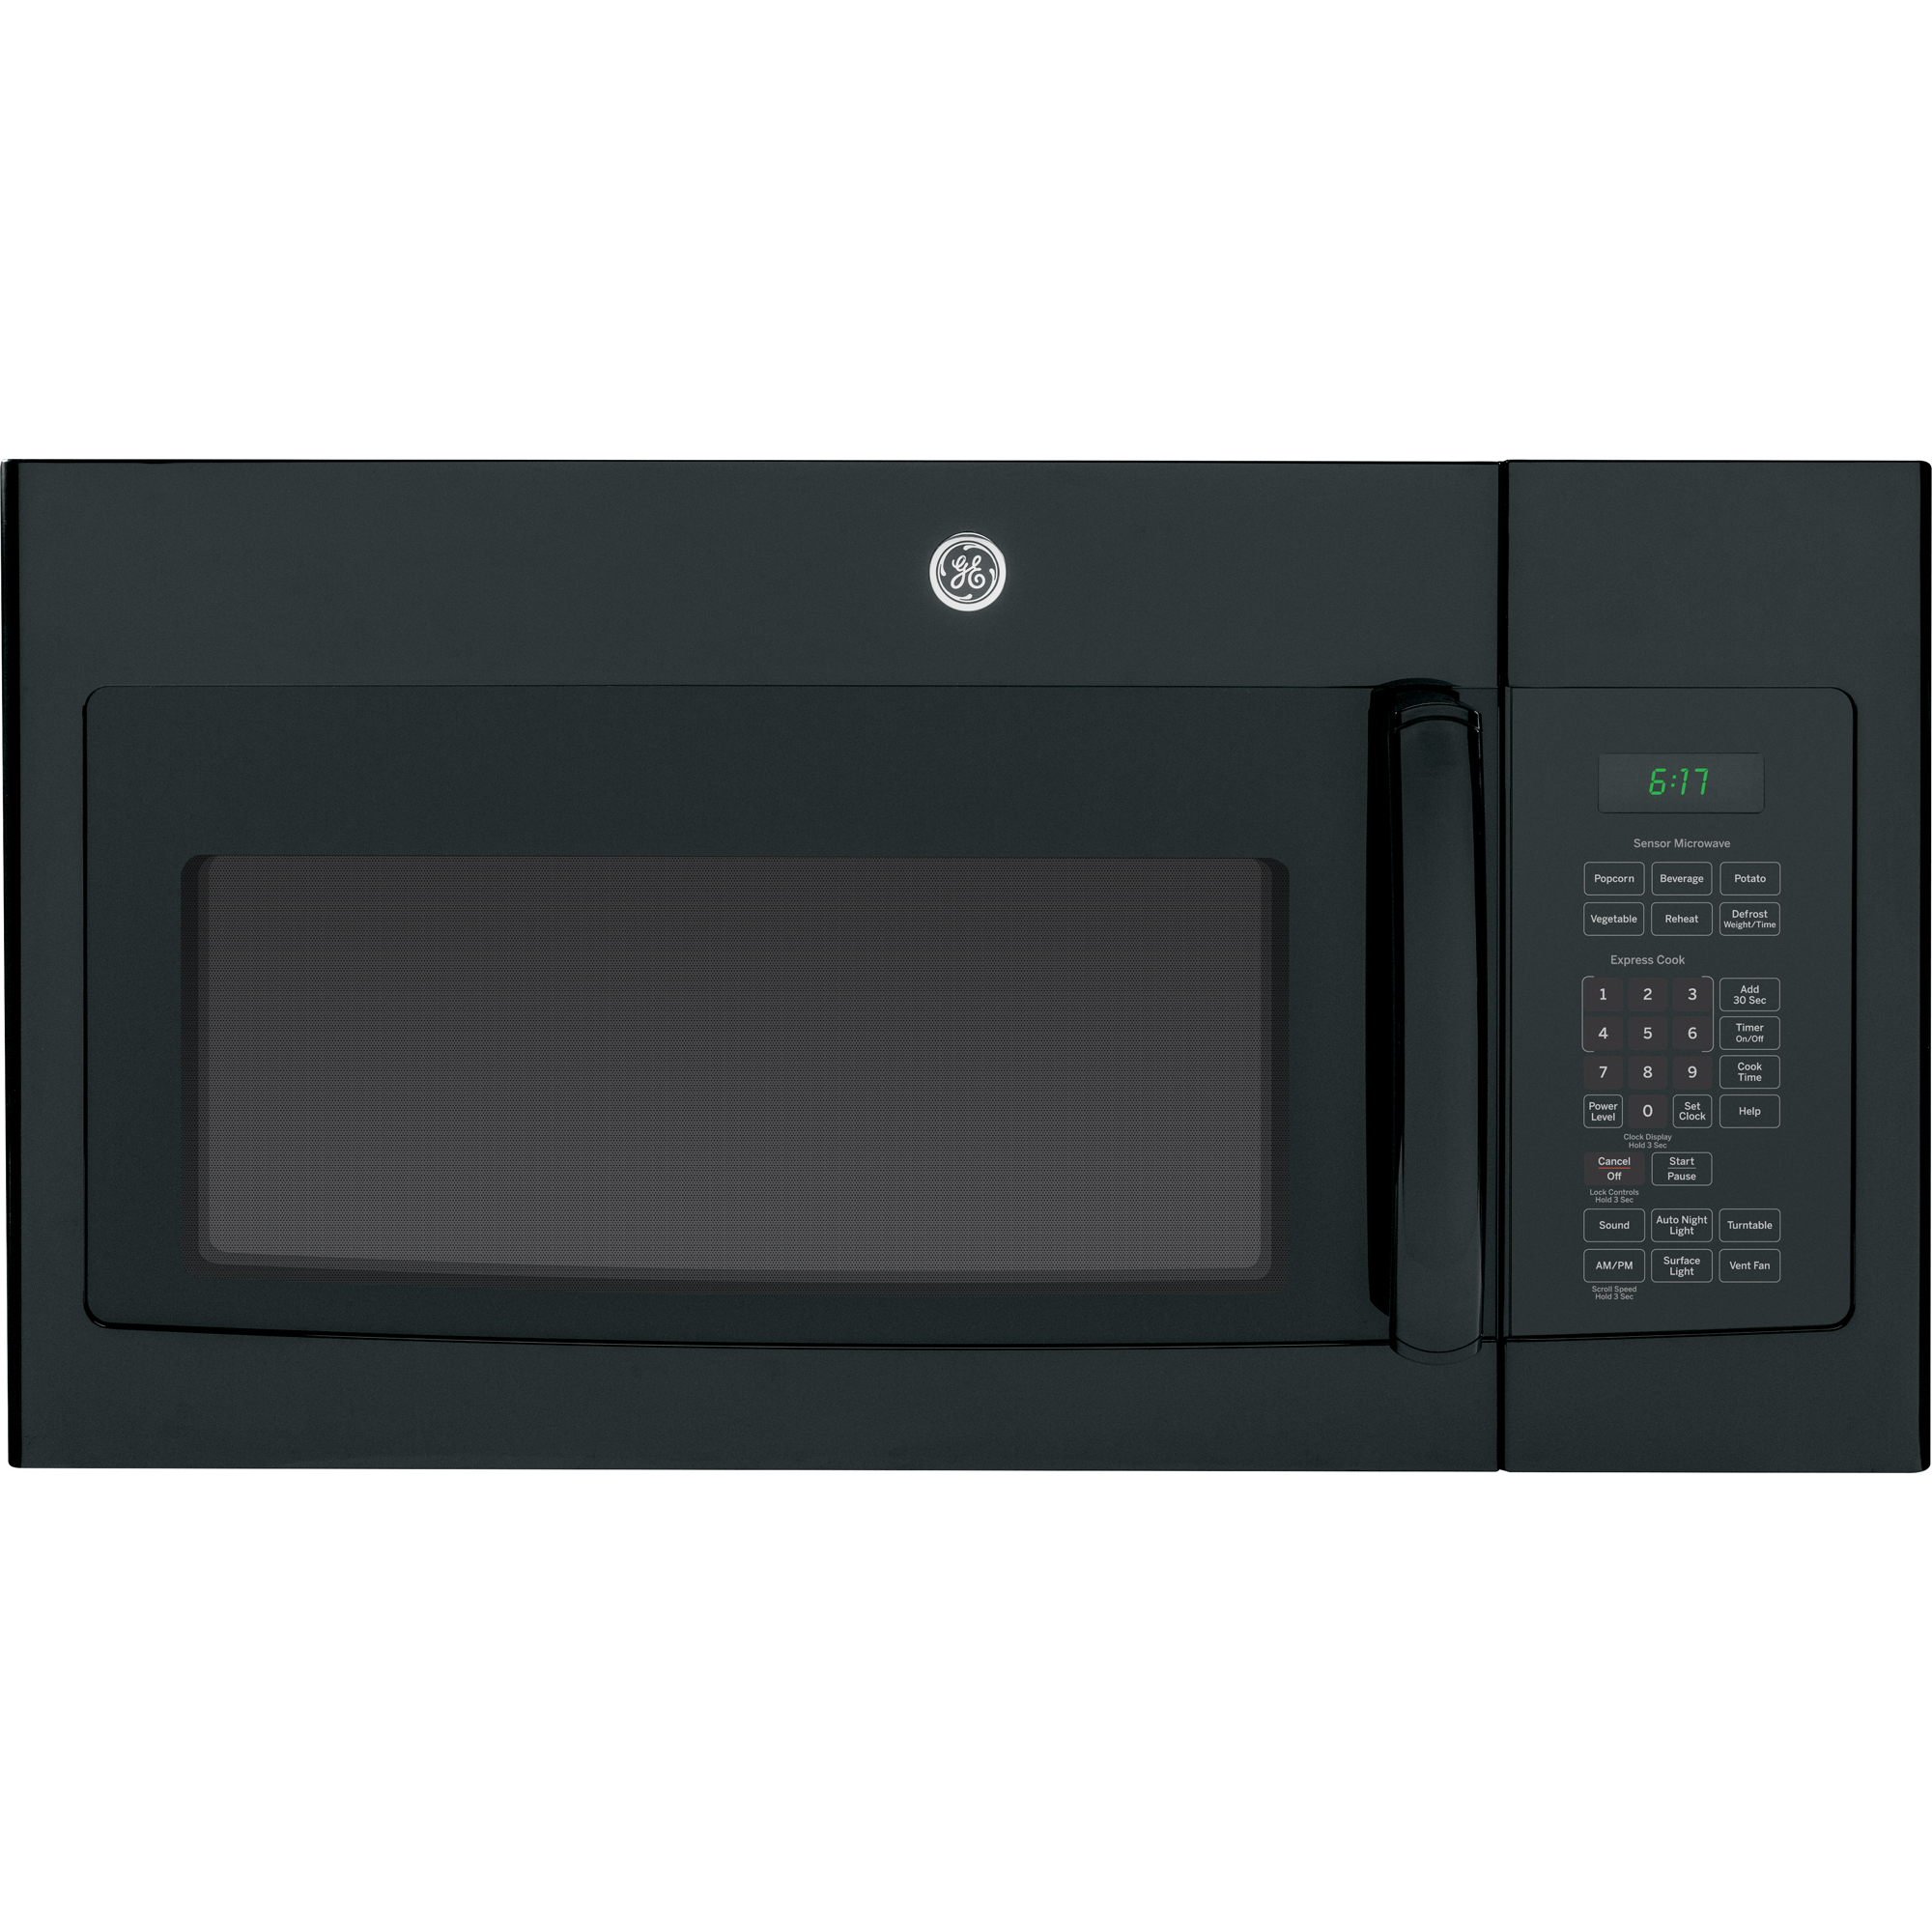 1.7 cu. ft. Over-the-Range Sensor Microwave Oven - Black